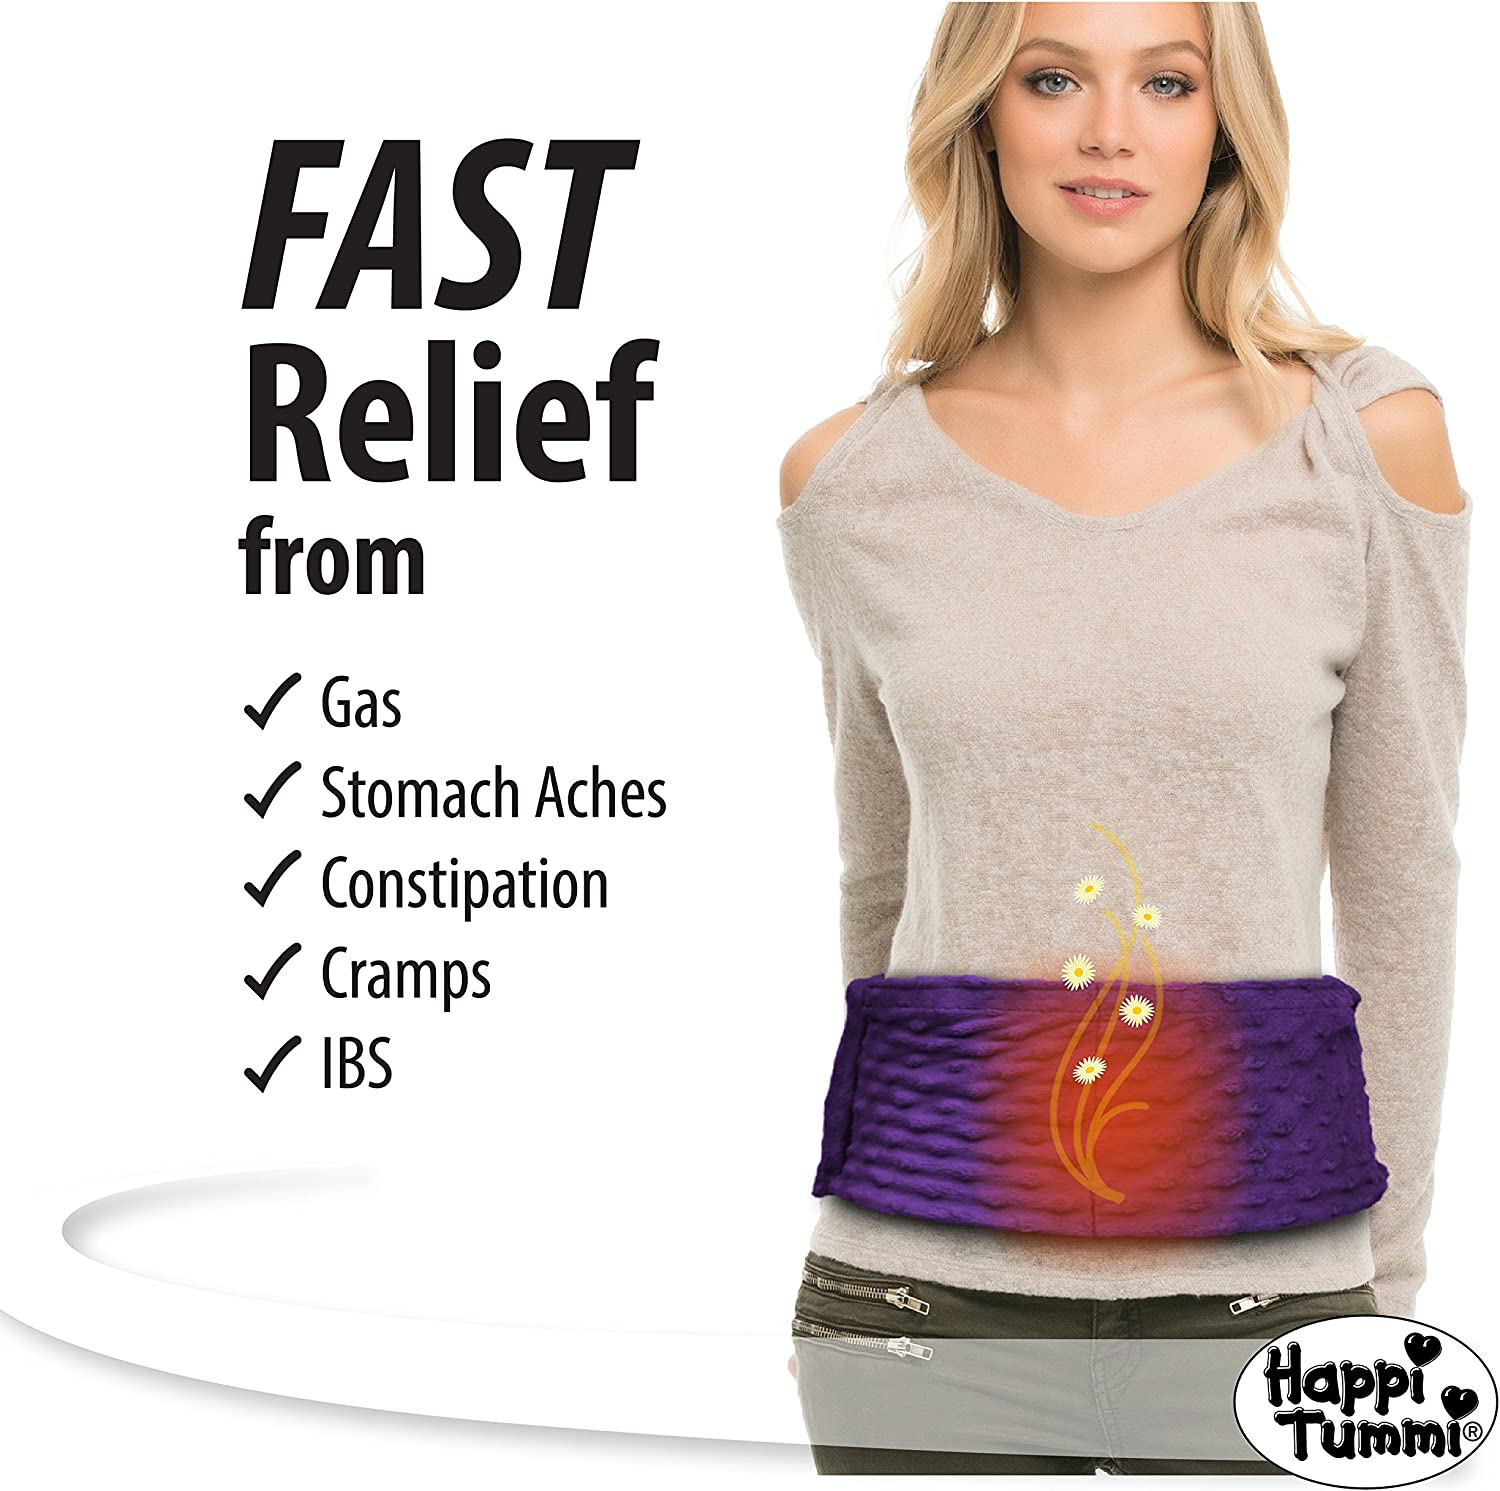 Happi Tummi - Menstrual Cramp Relief Natural Soothing Herbal Aromatherapy and Heating Pad - Medium Lavender